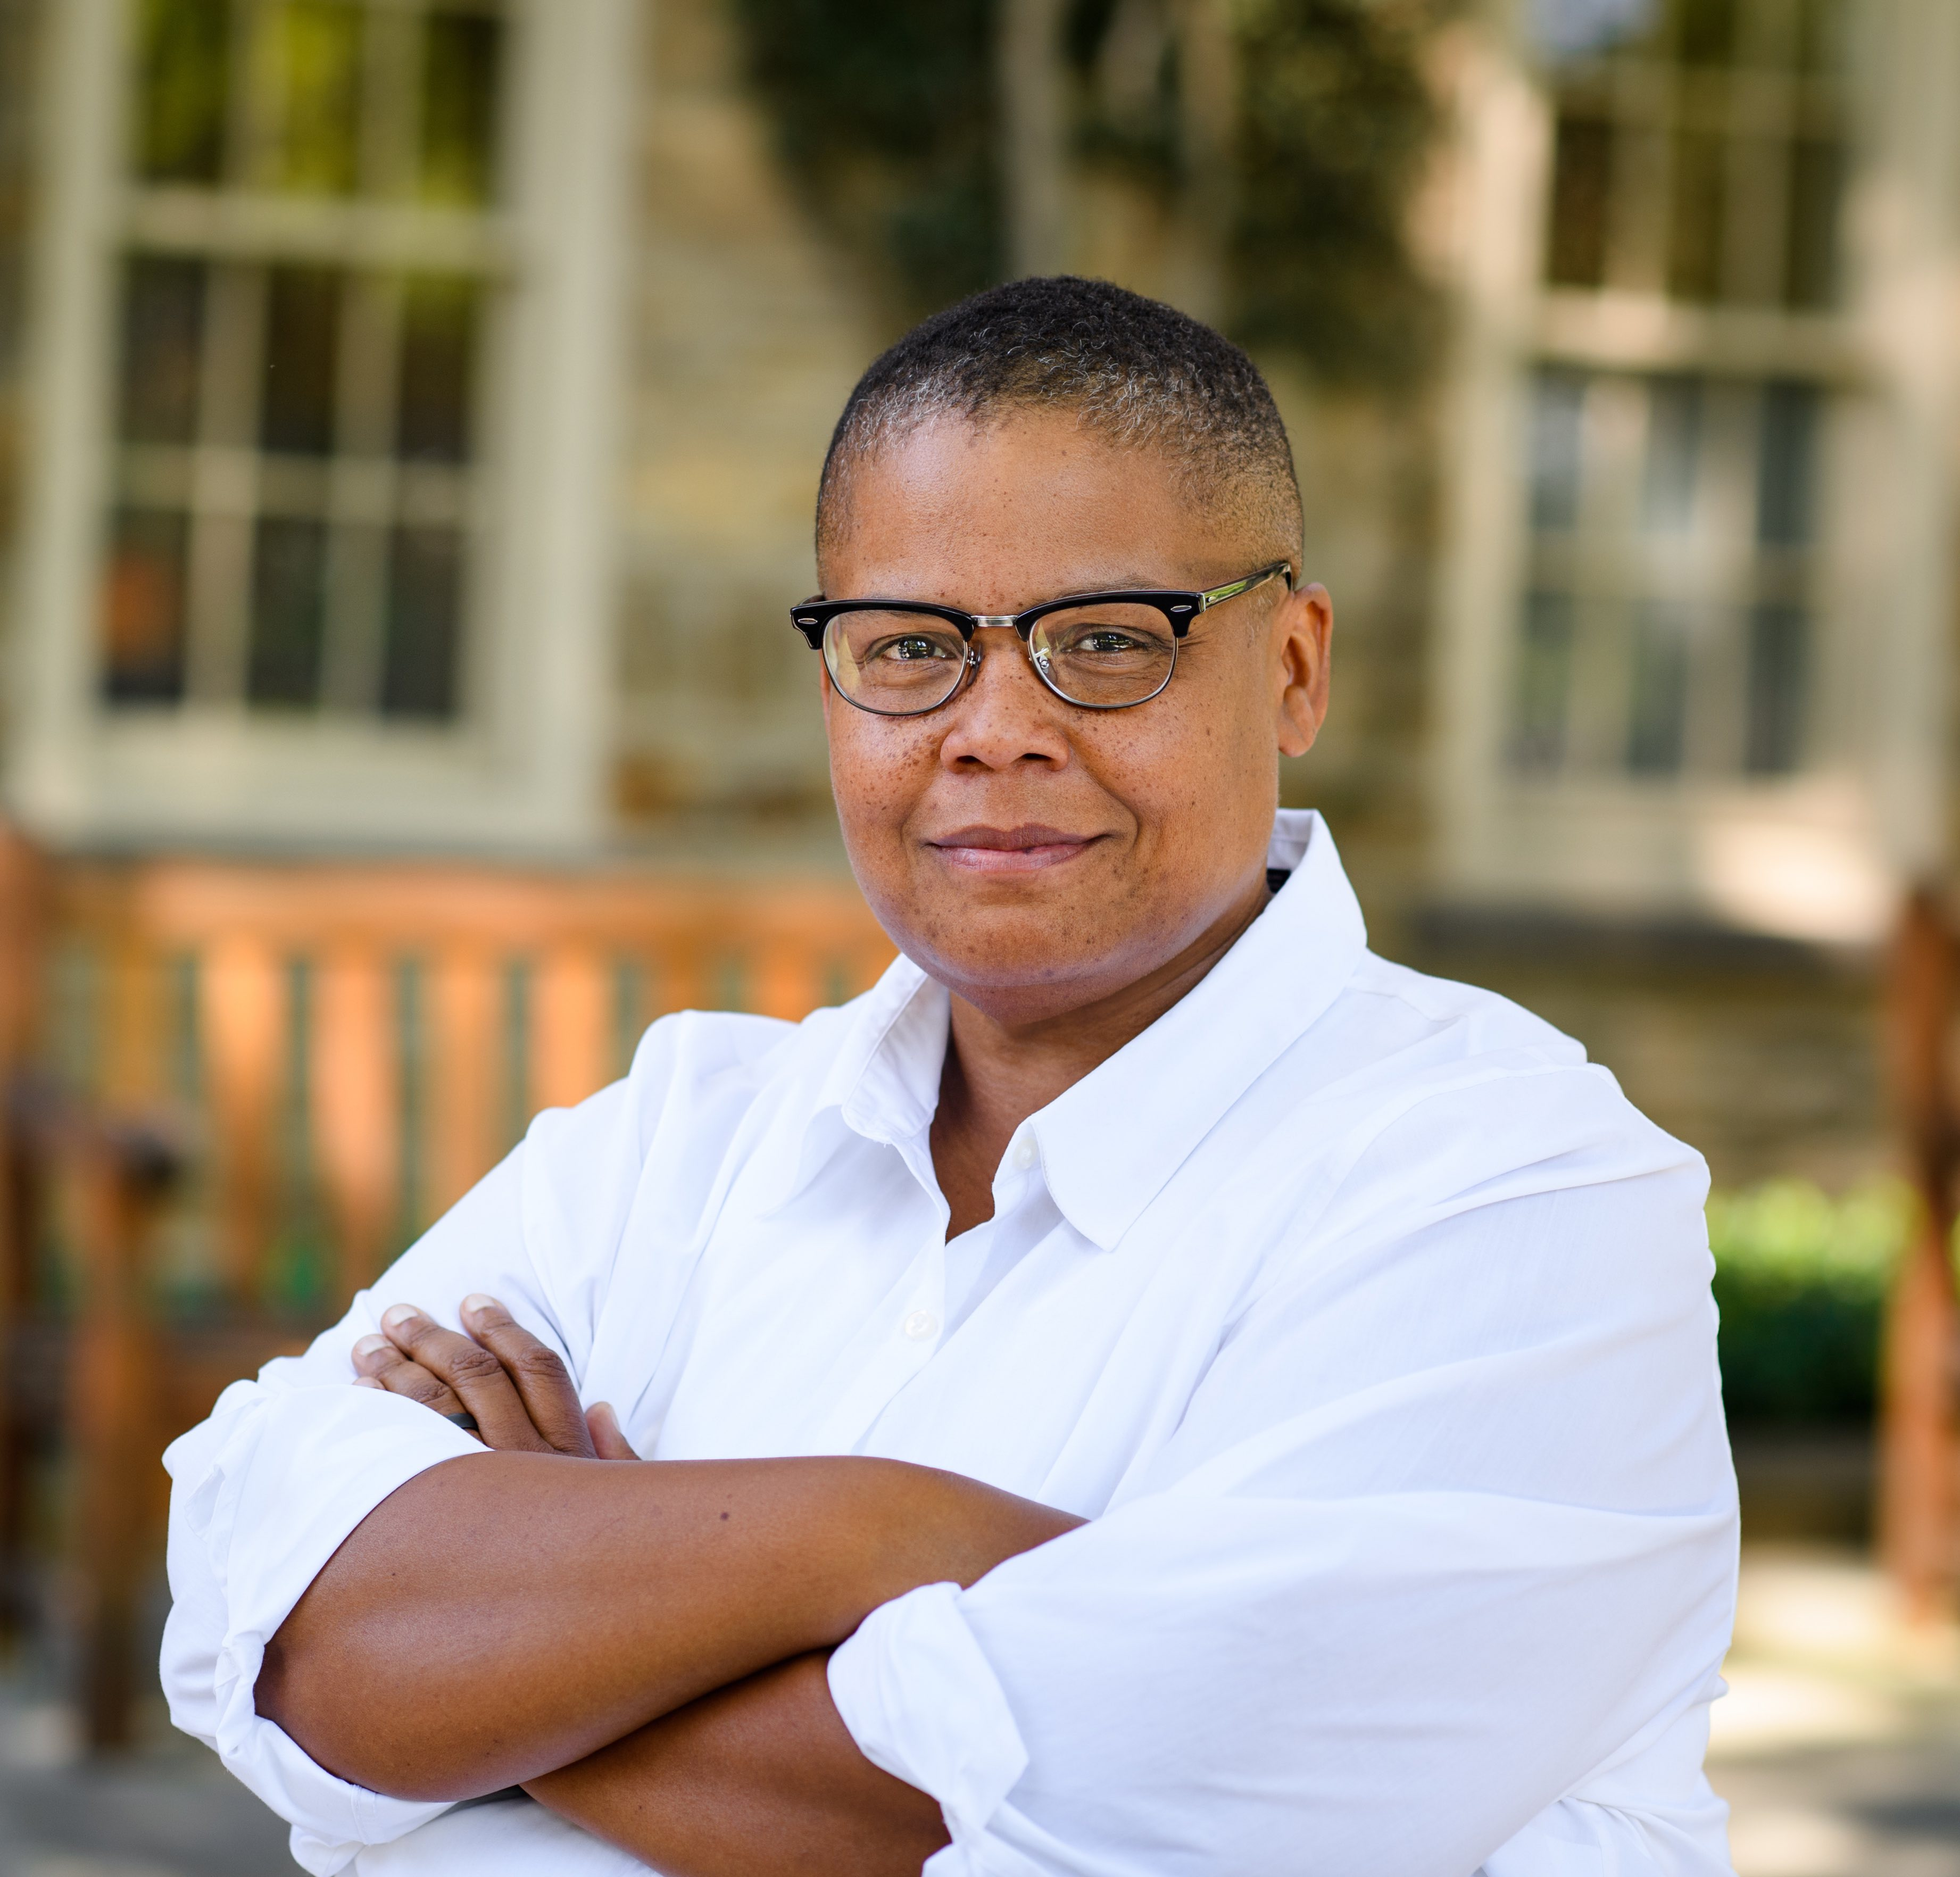 Dreaming Freedom, Speaking Resistance: A Conversation with Keeanga-Yamahtta Taylor